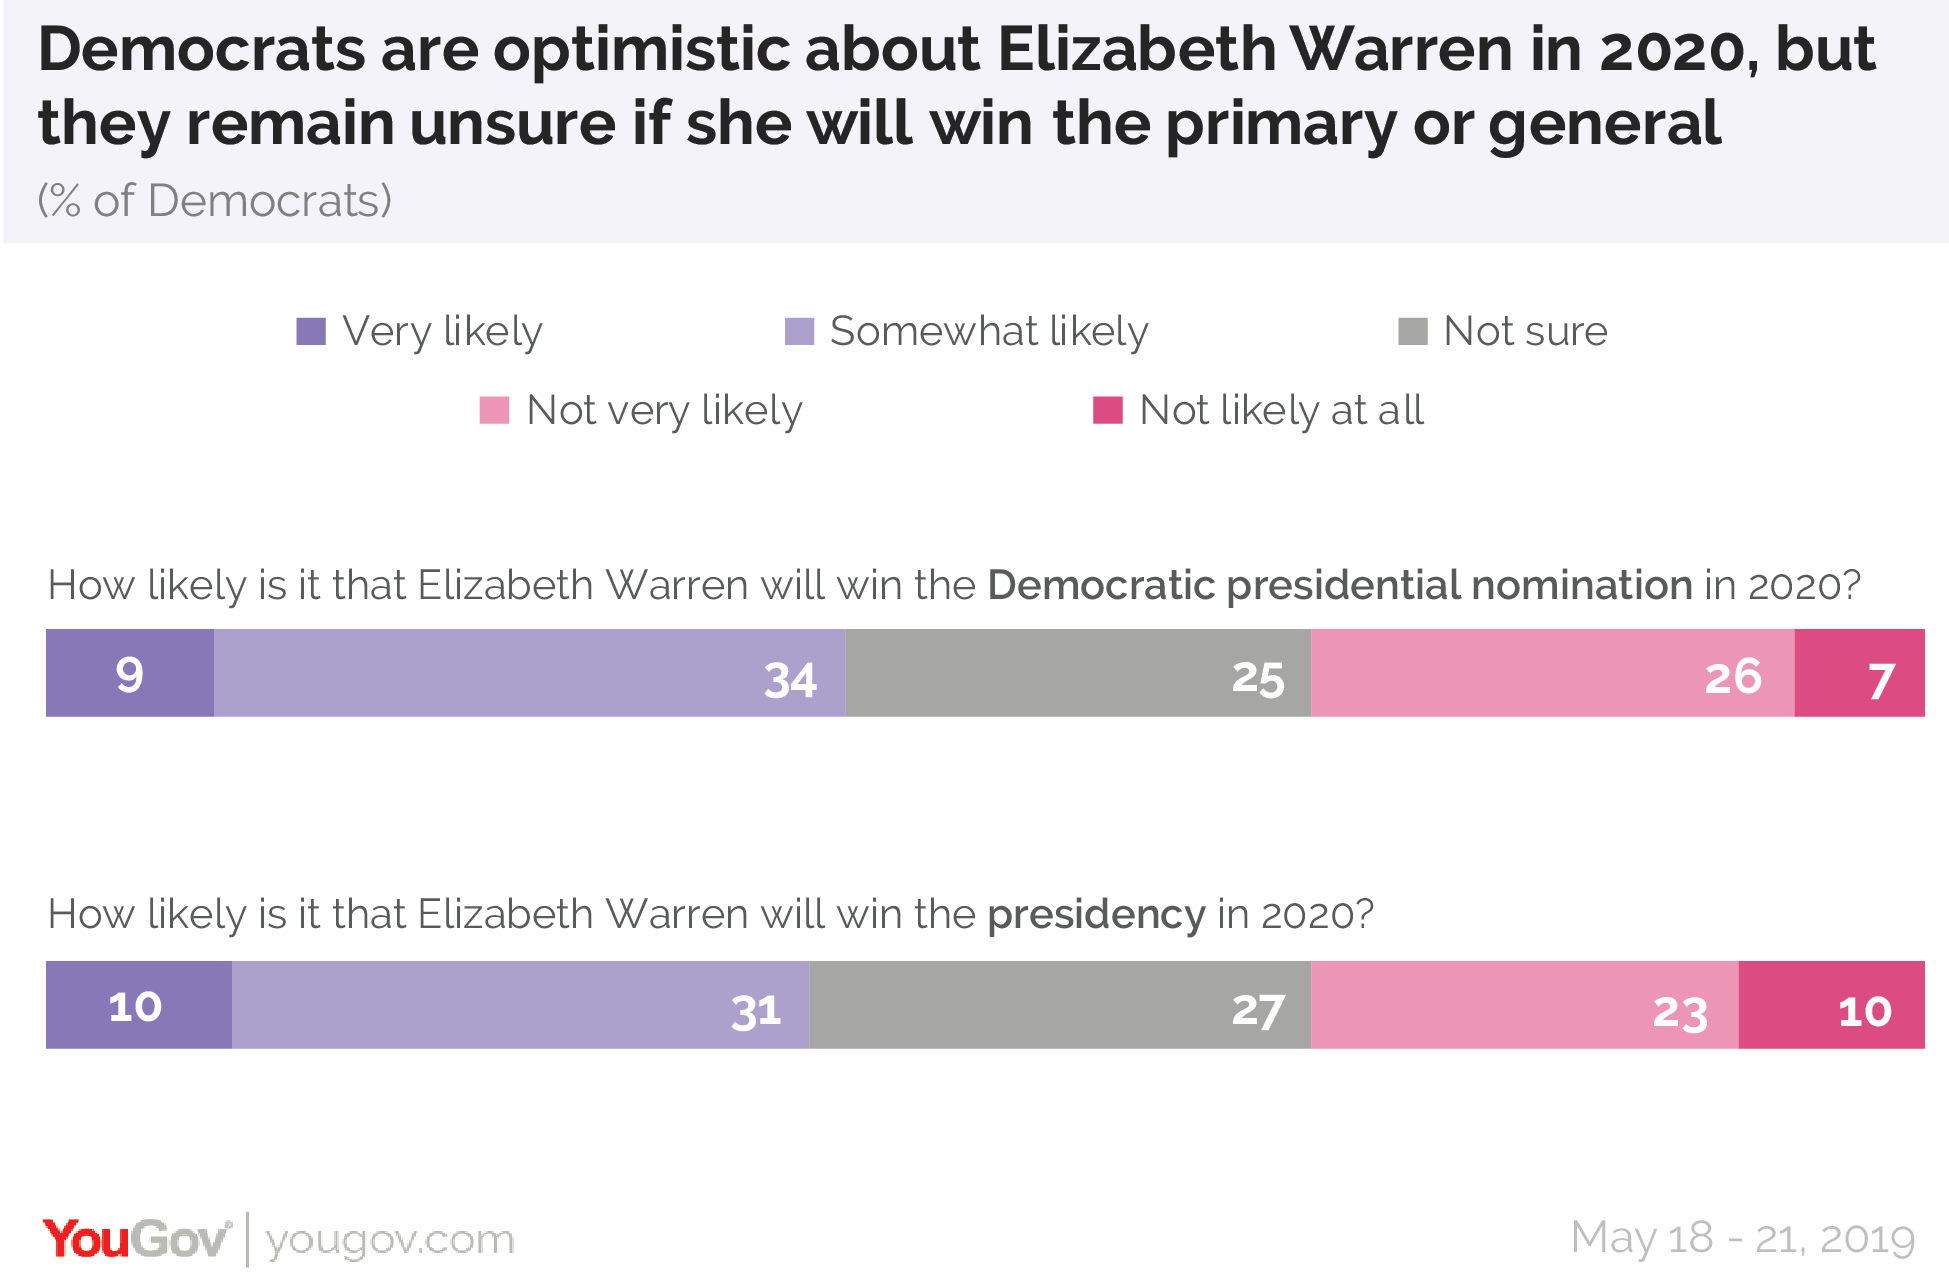 Democrats are optimistic about Elizabeth Warren in 2020, but they remain unsure if she will win the primary or general elections